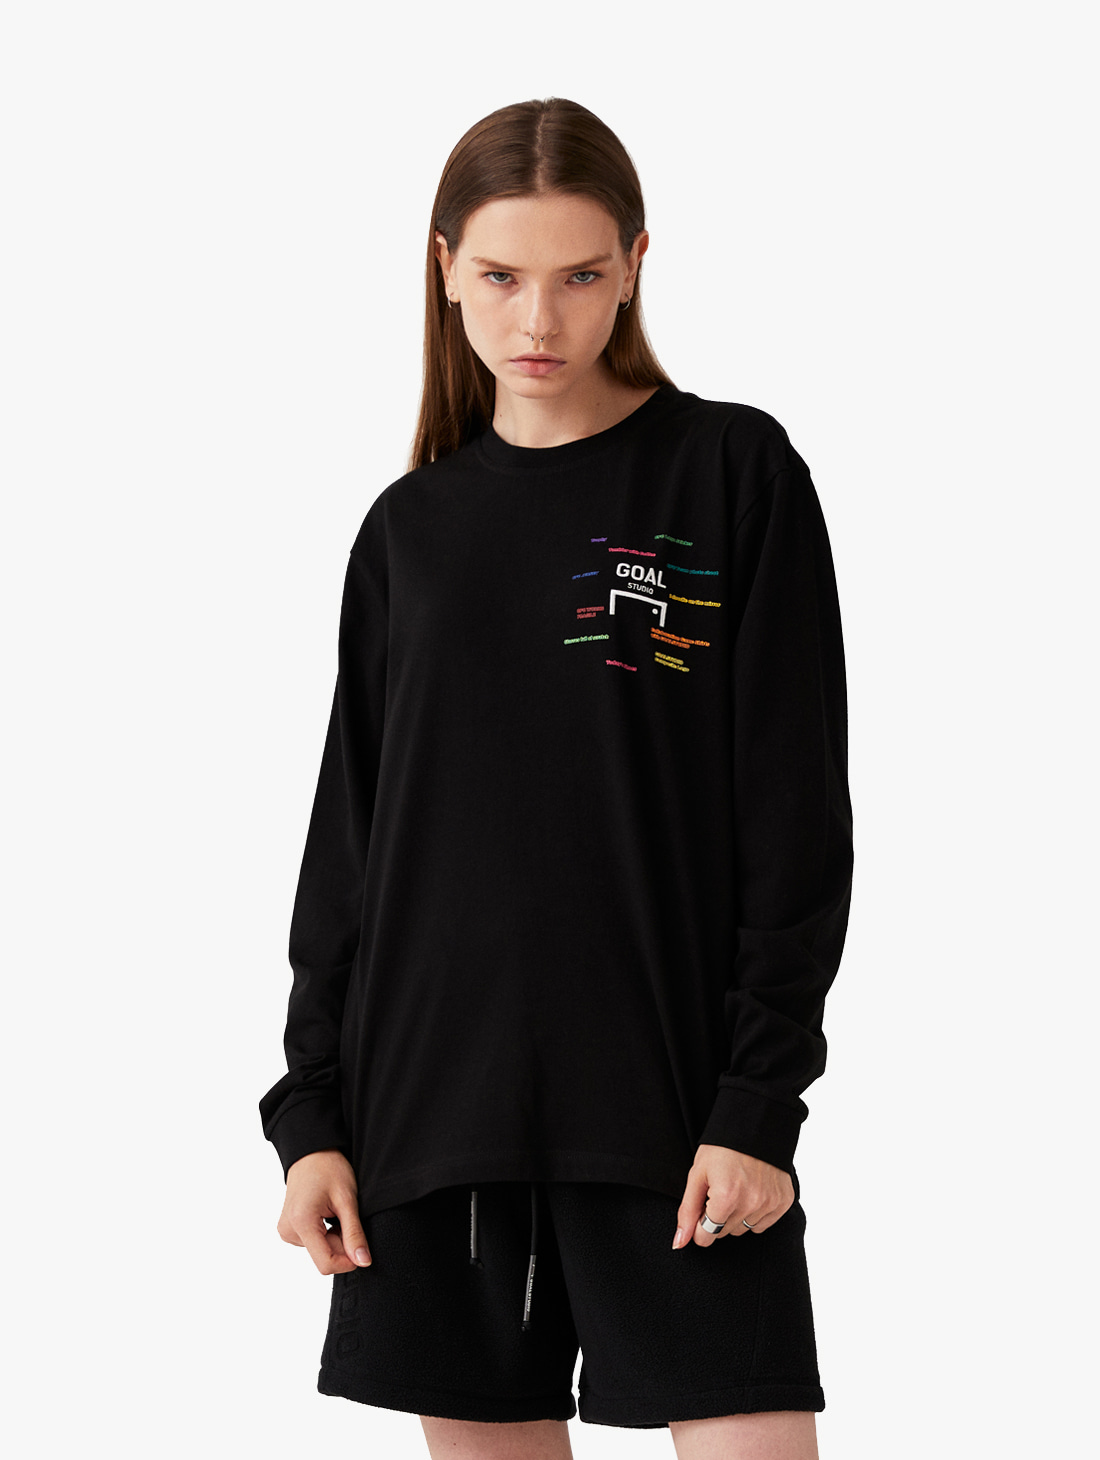 GOALSTUDIO CFC LOCKER ROOM LONG SLEEVE TEE